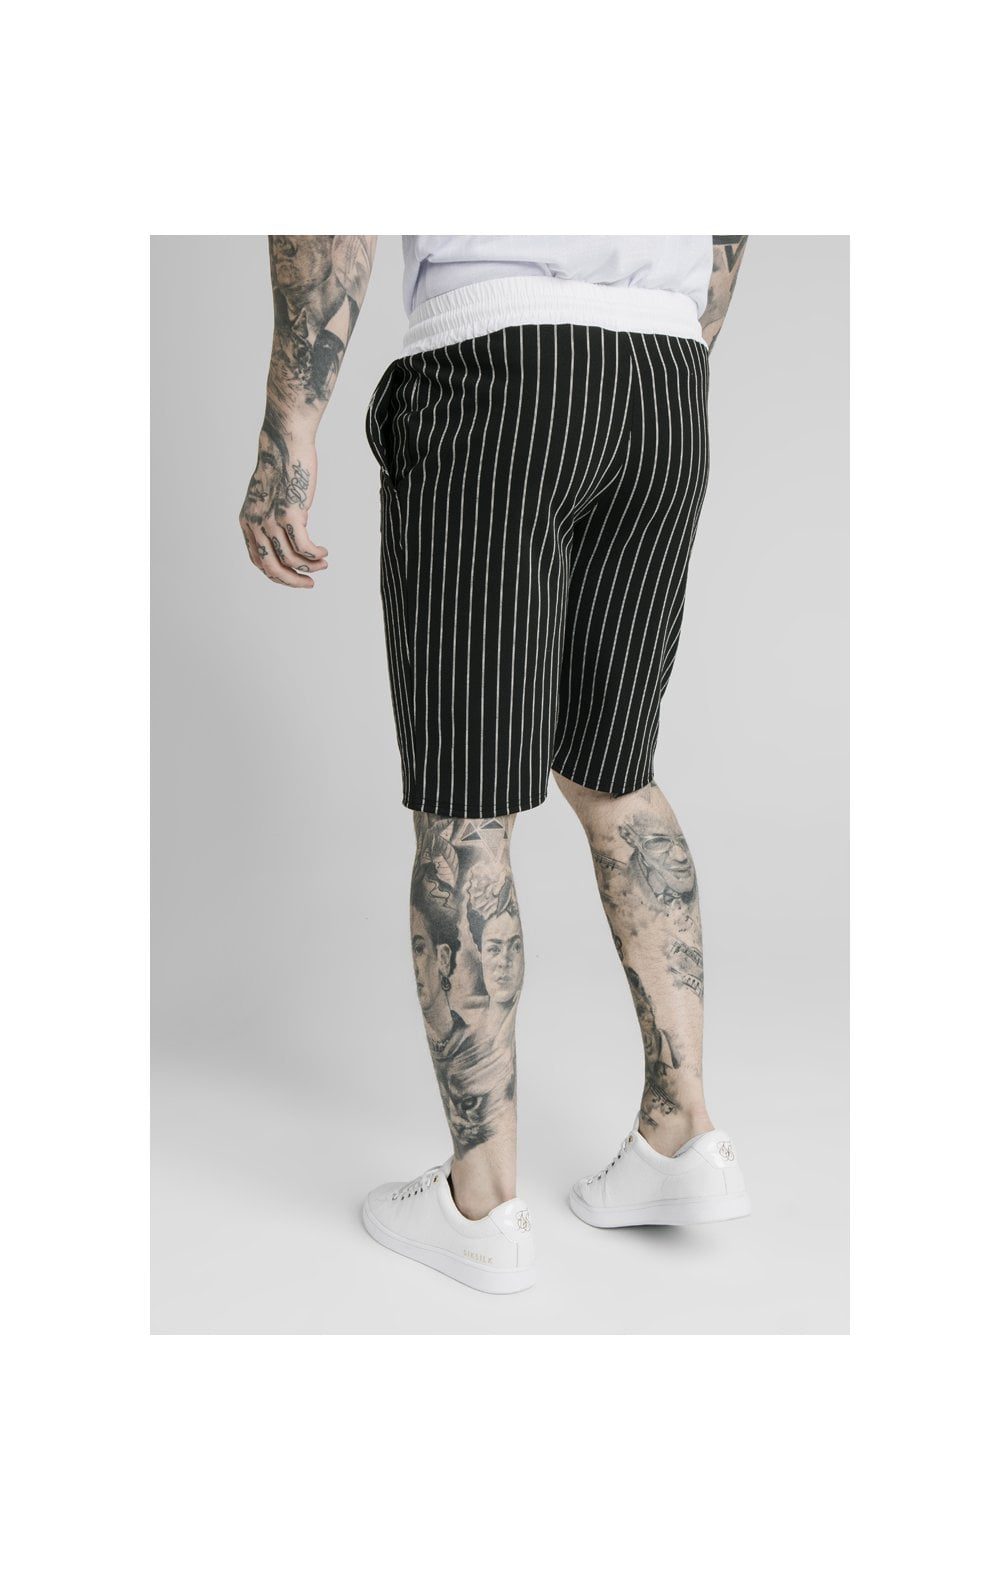 Load image into Gallery viewer, SikSilk Chino Elasticated Long Shorts - Black & White (3)